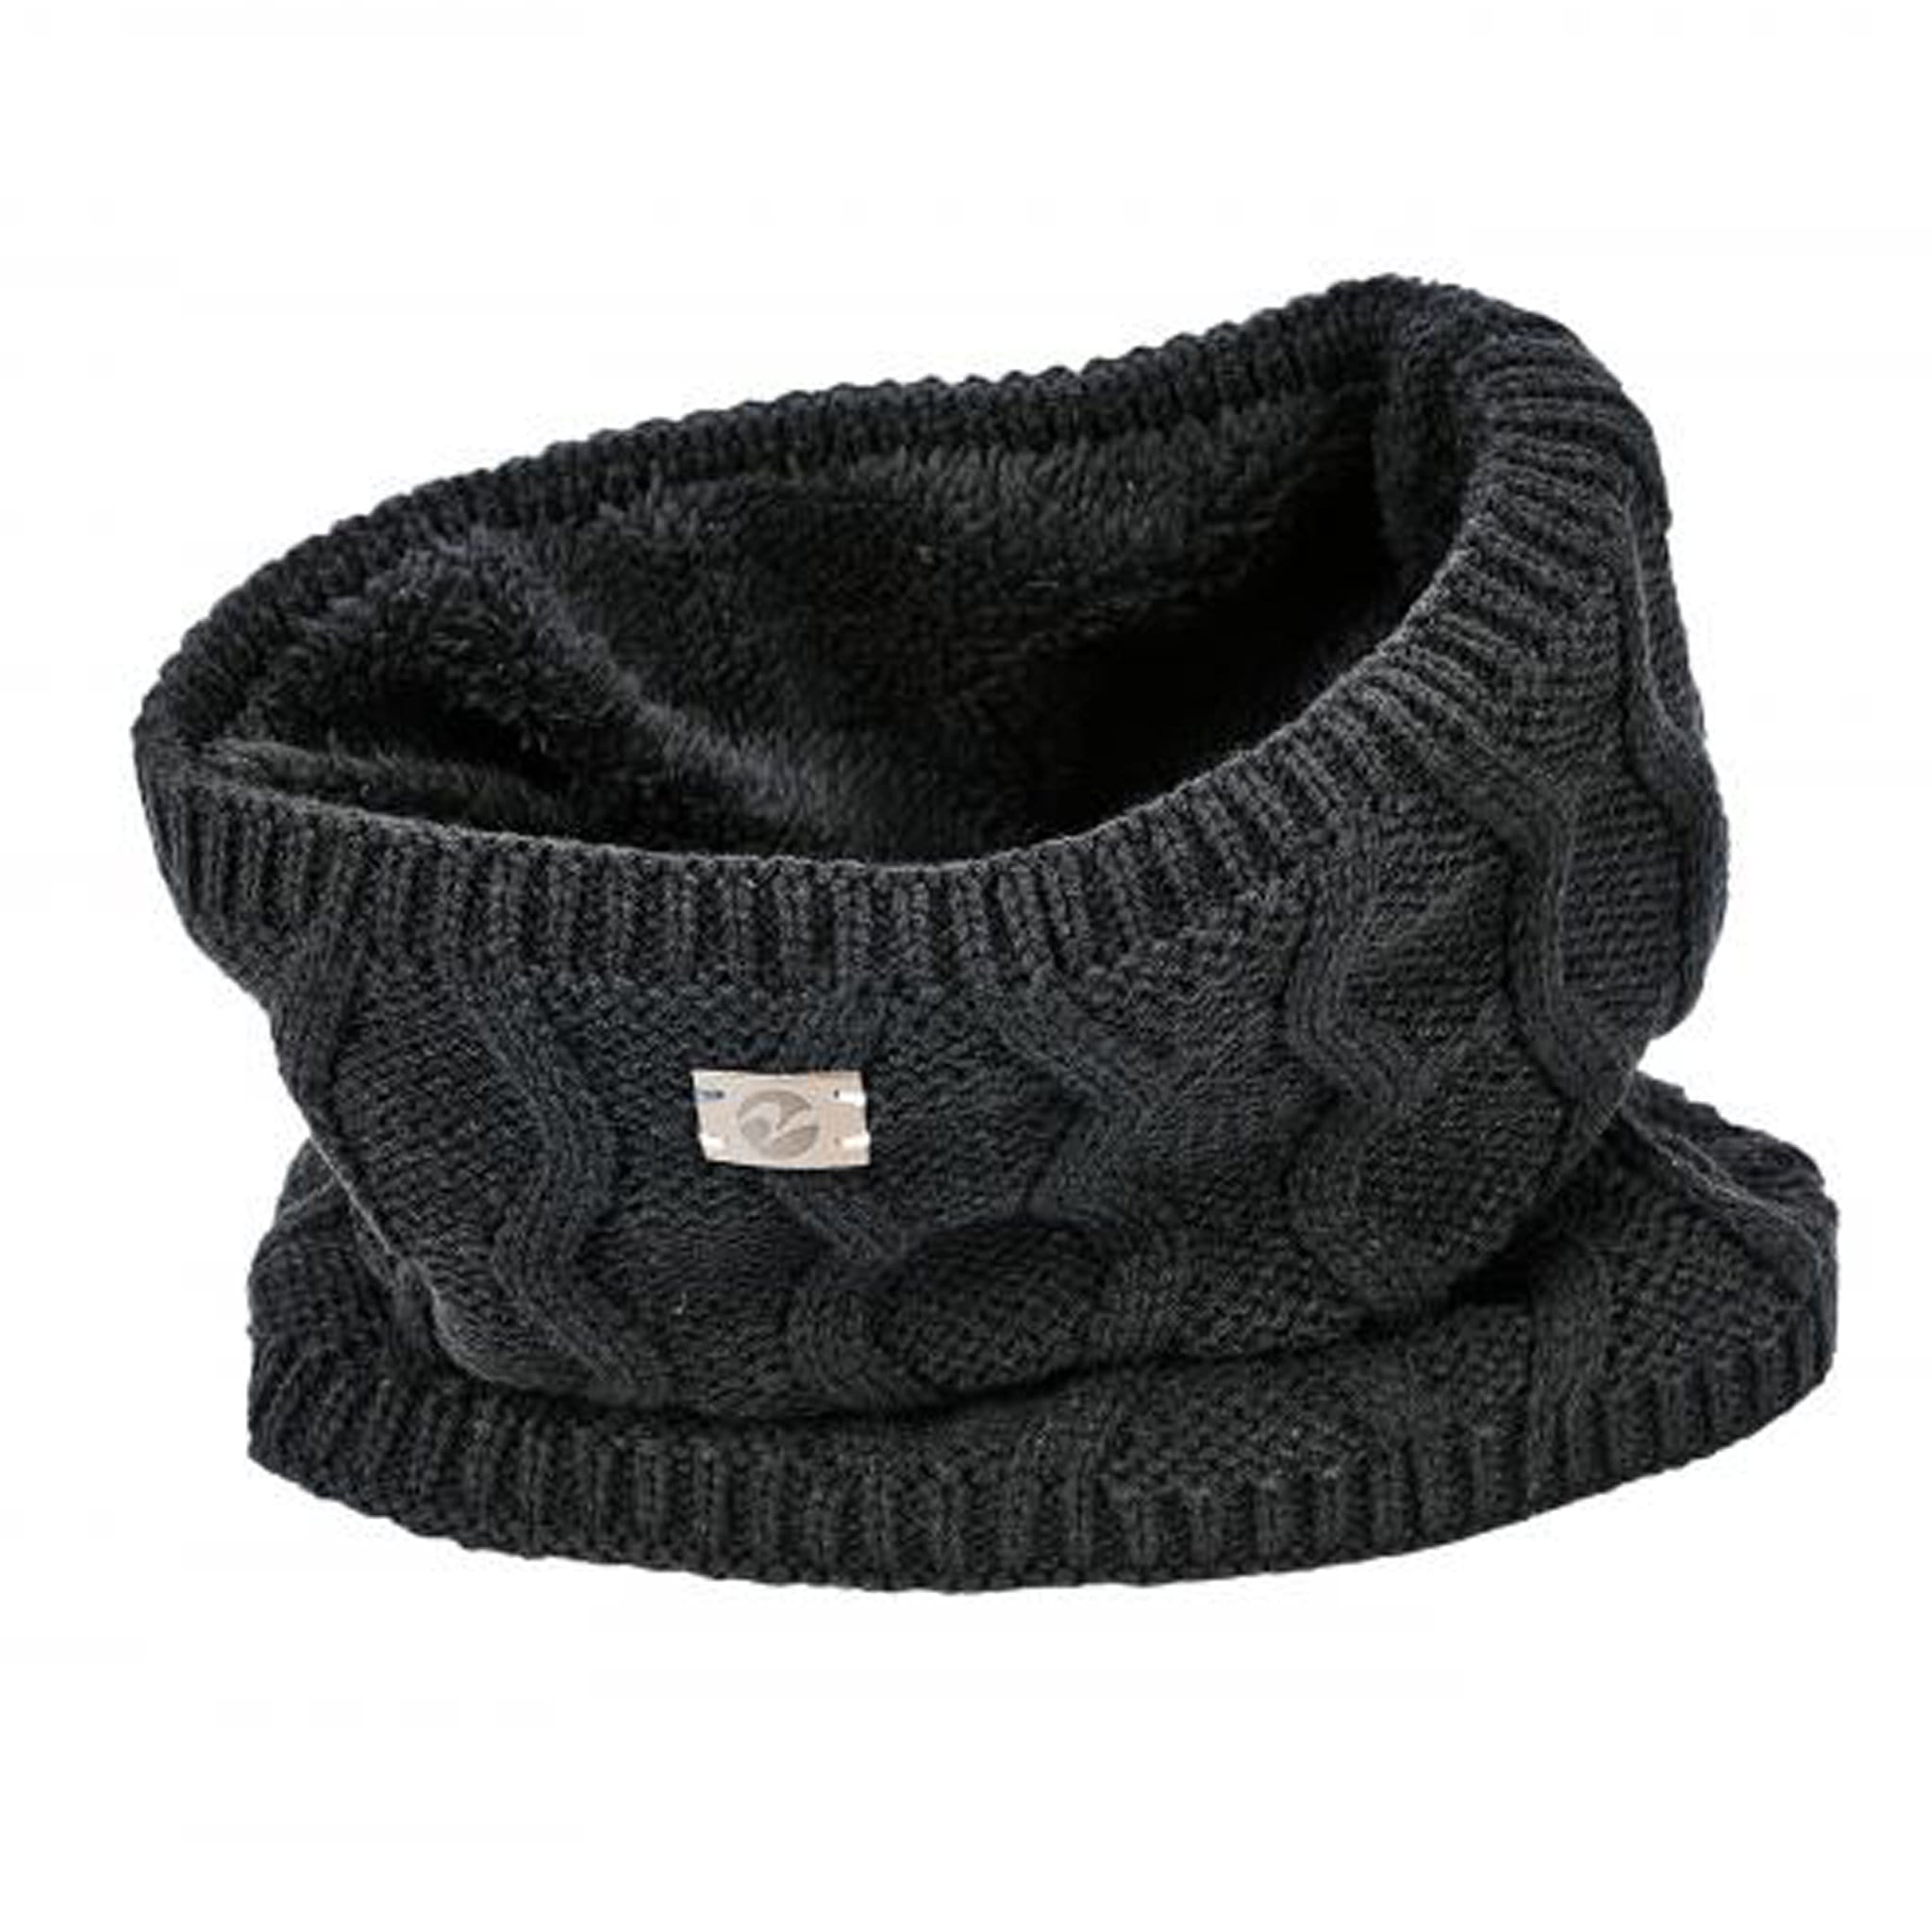 Busse Evolet Knitted Snood Black 719332.